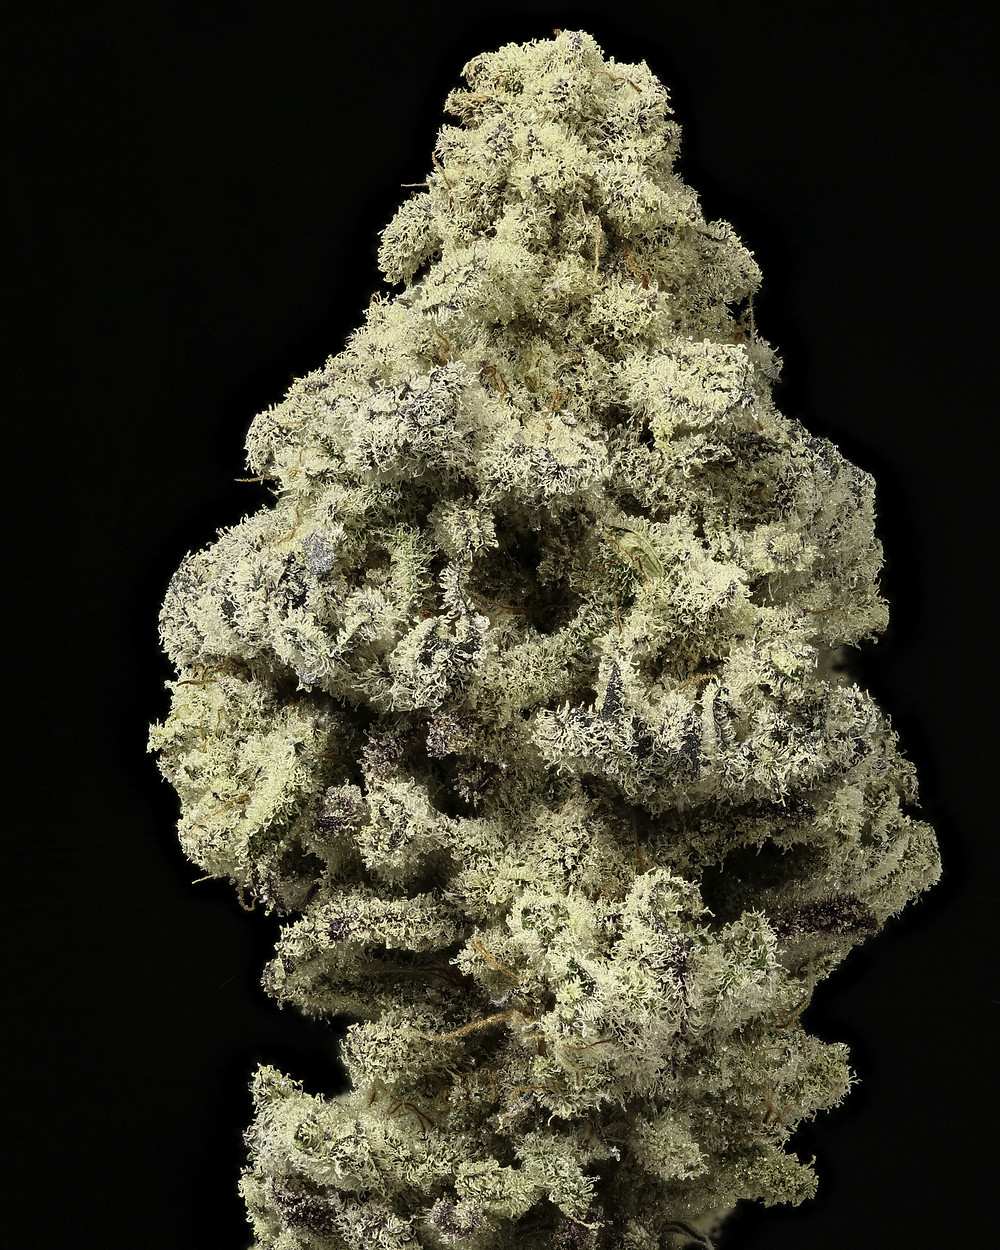 alien cream #2 strain profile and review by the epic remedy colorado springs' best dispensary